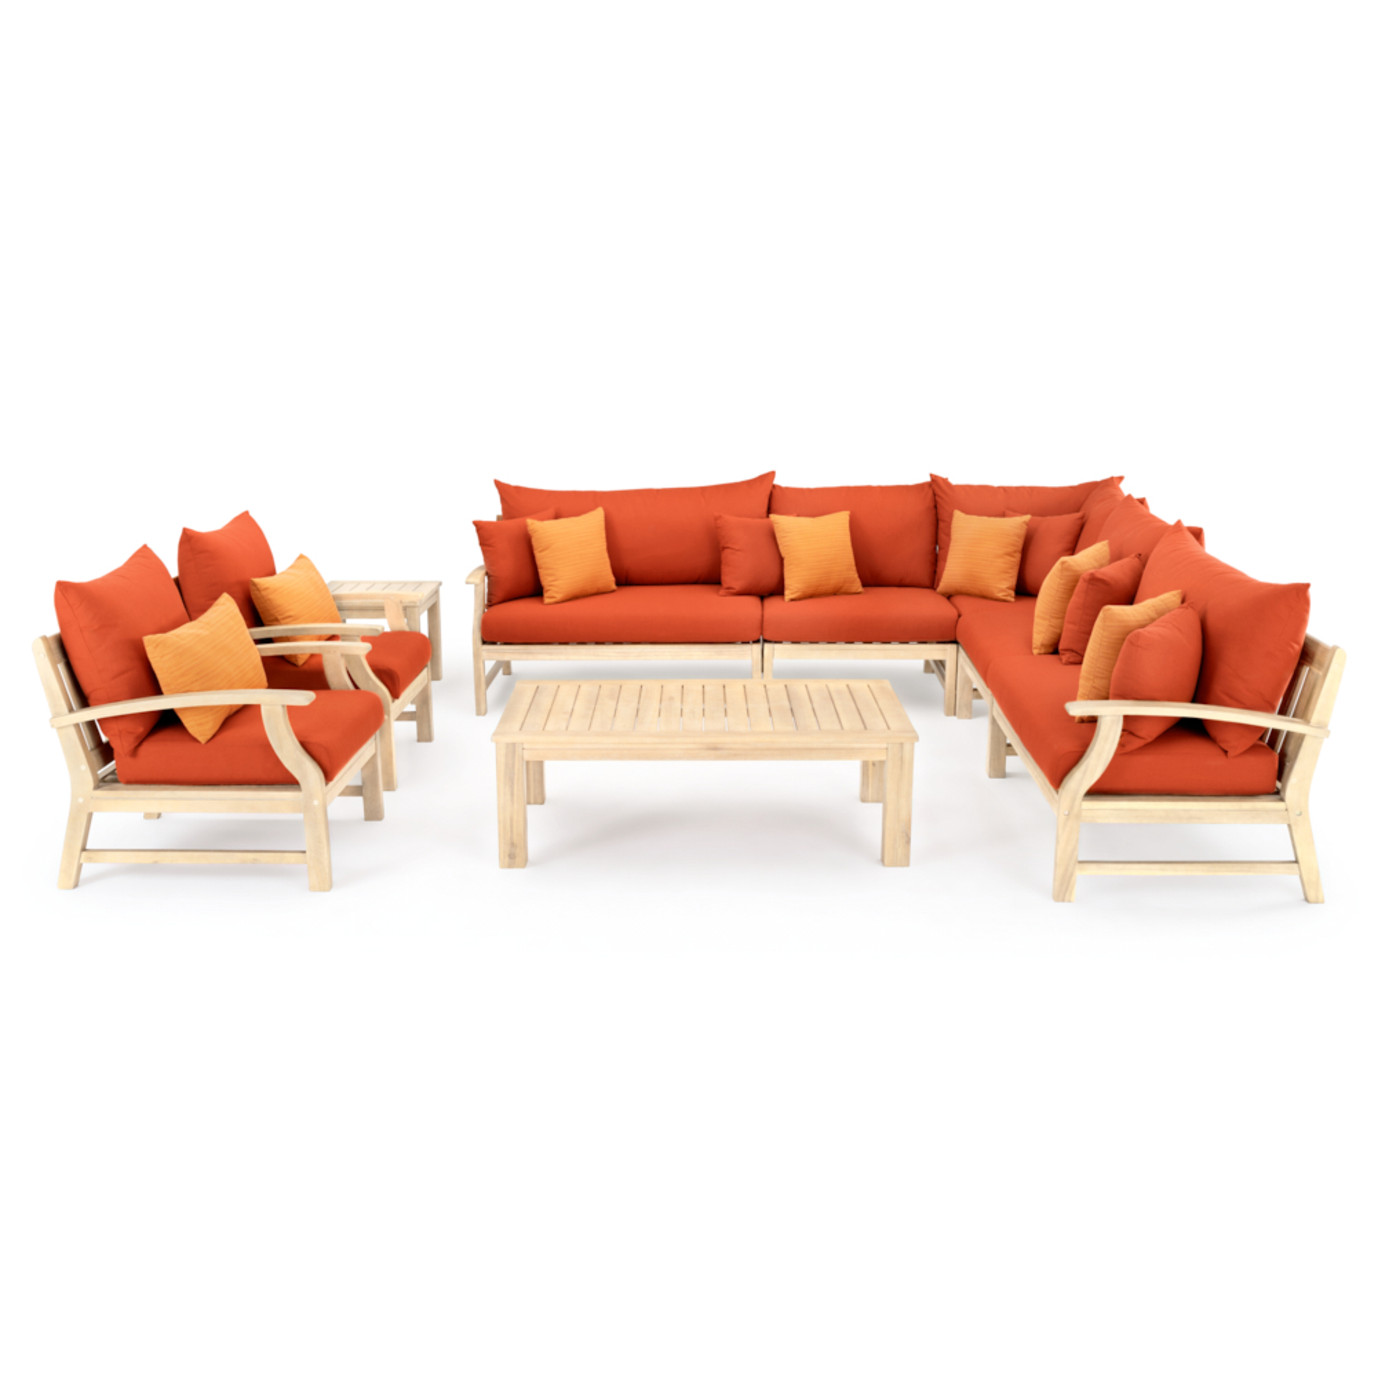 Kooper 9pc Seating Set - Tikka Orange